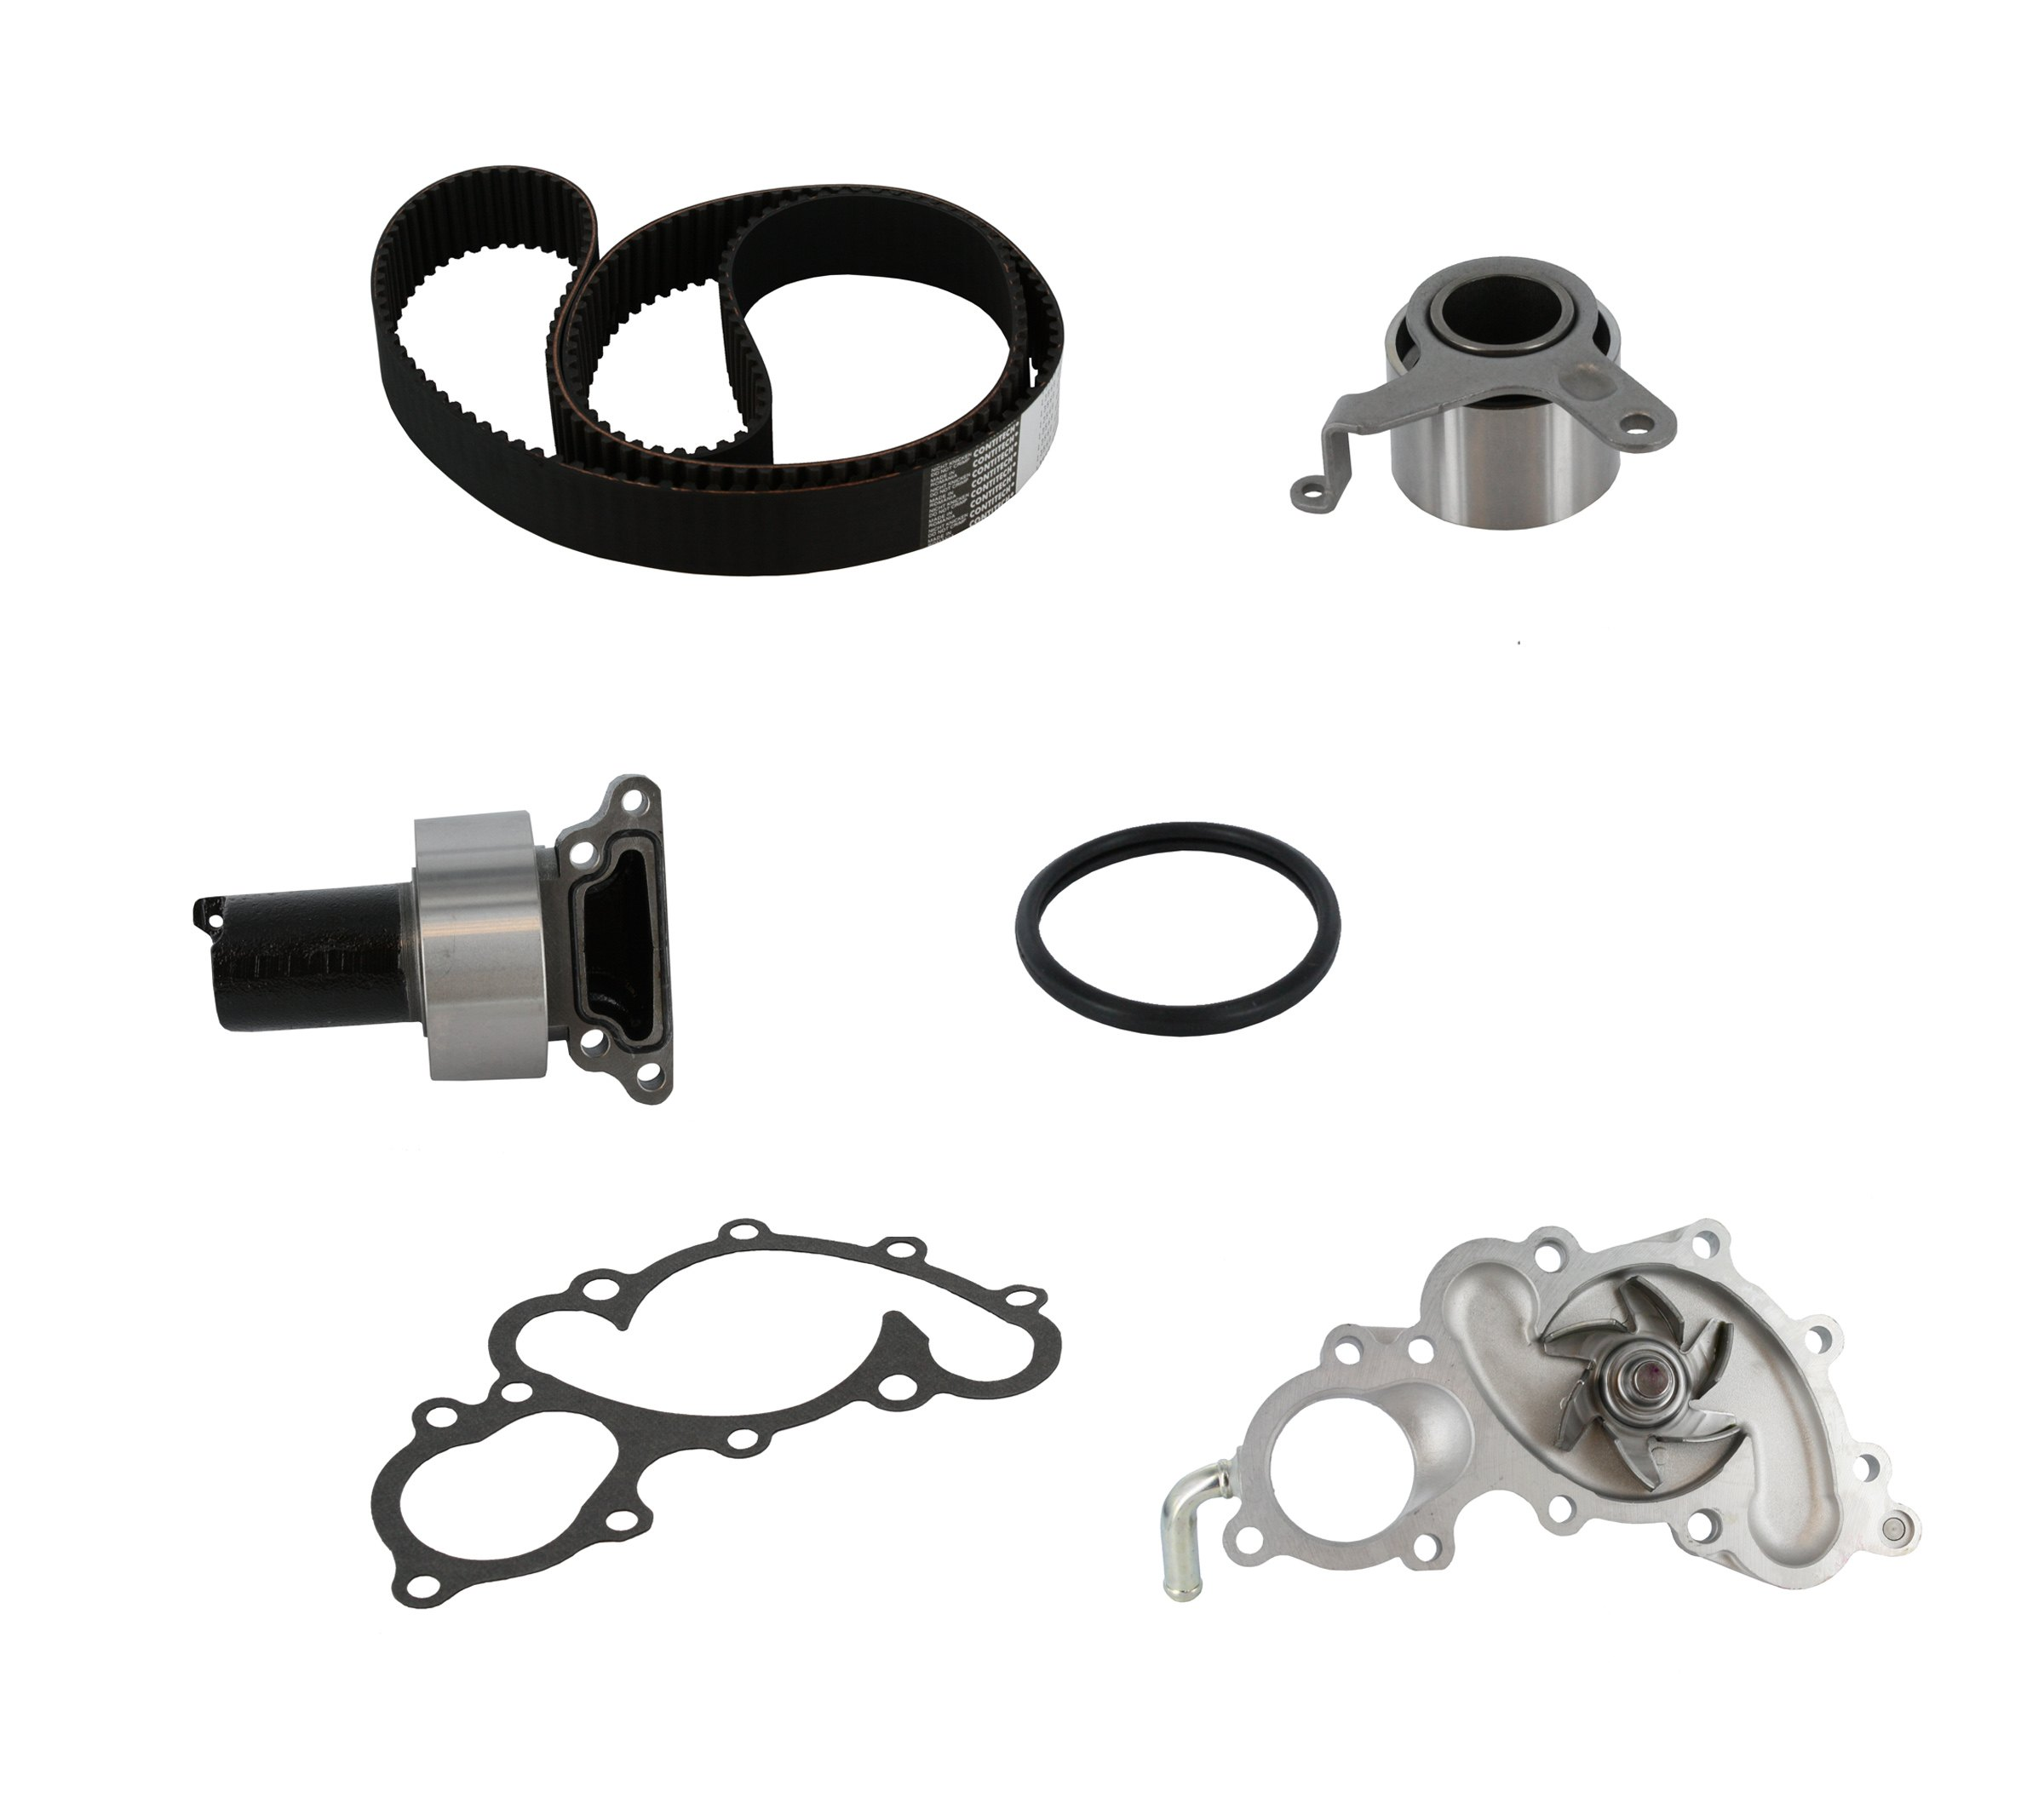 Continental Contitech Tb154lk1 Pro Series Timing Belt Kit With 1992 Toyota 4runner Water